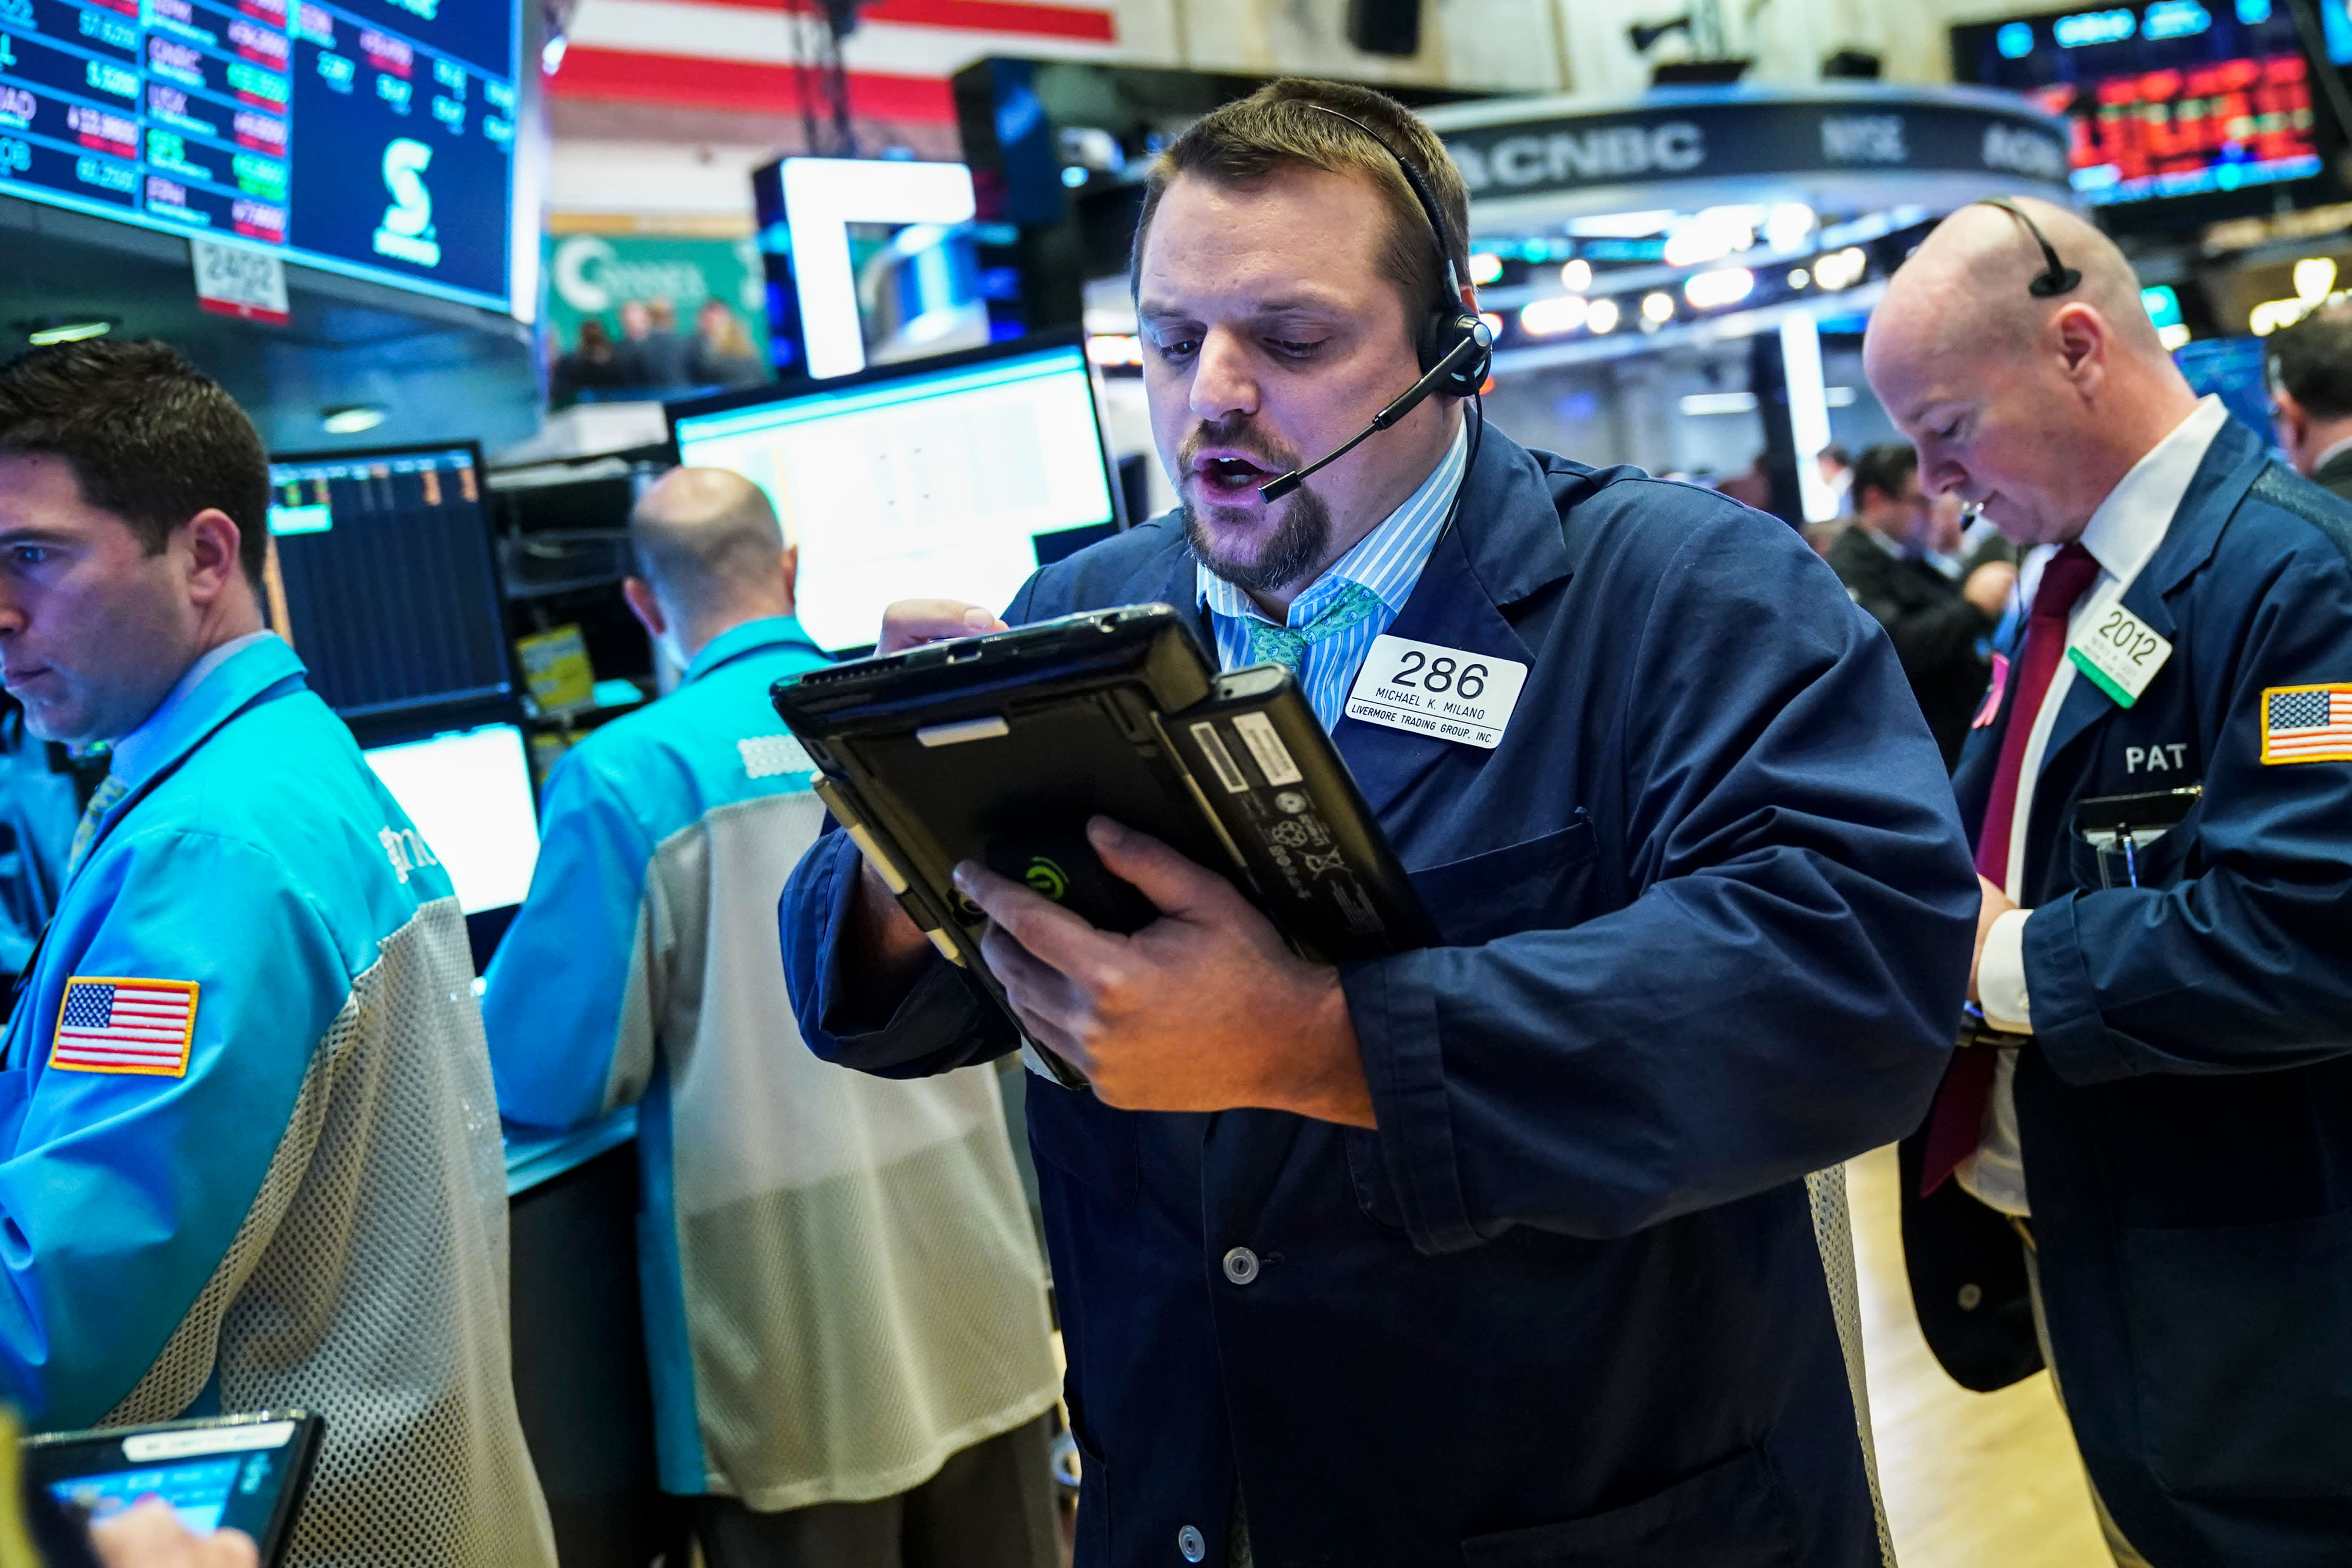 Selling software service stocks on trade worries is a 'big mistake,' Jim Cramer says